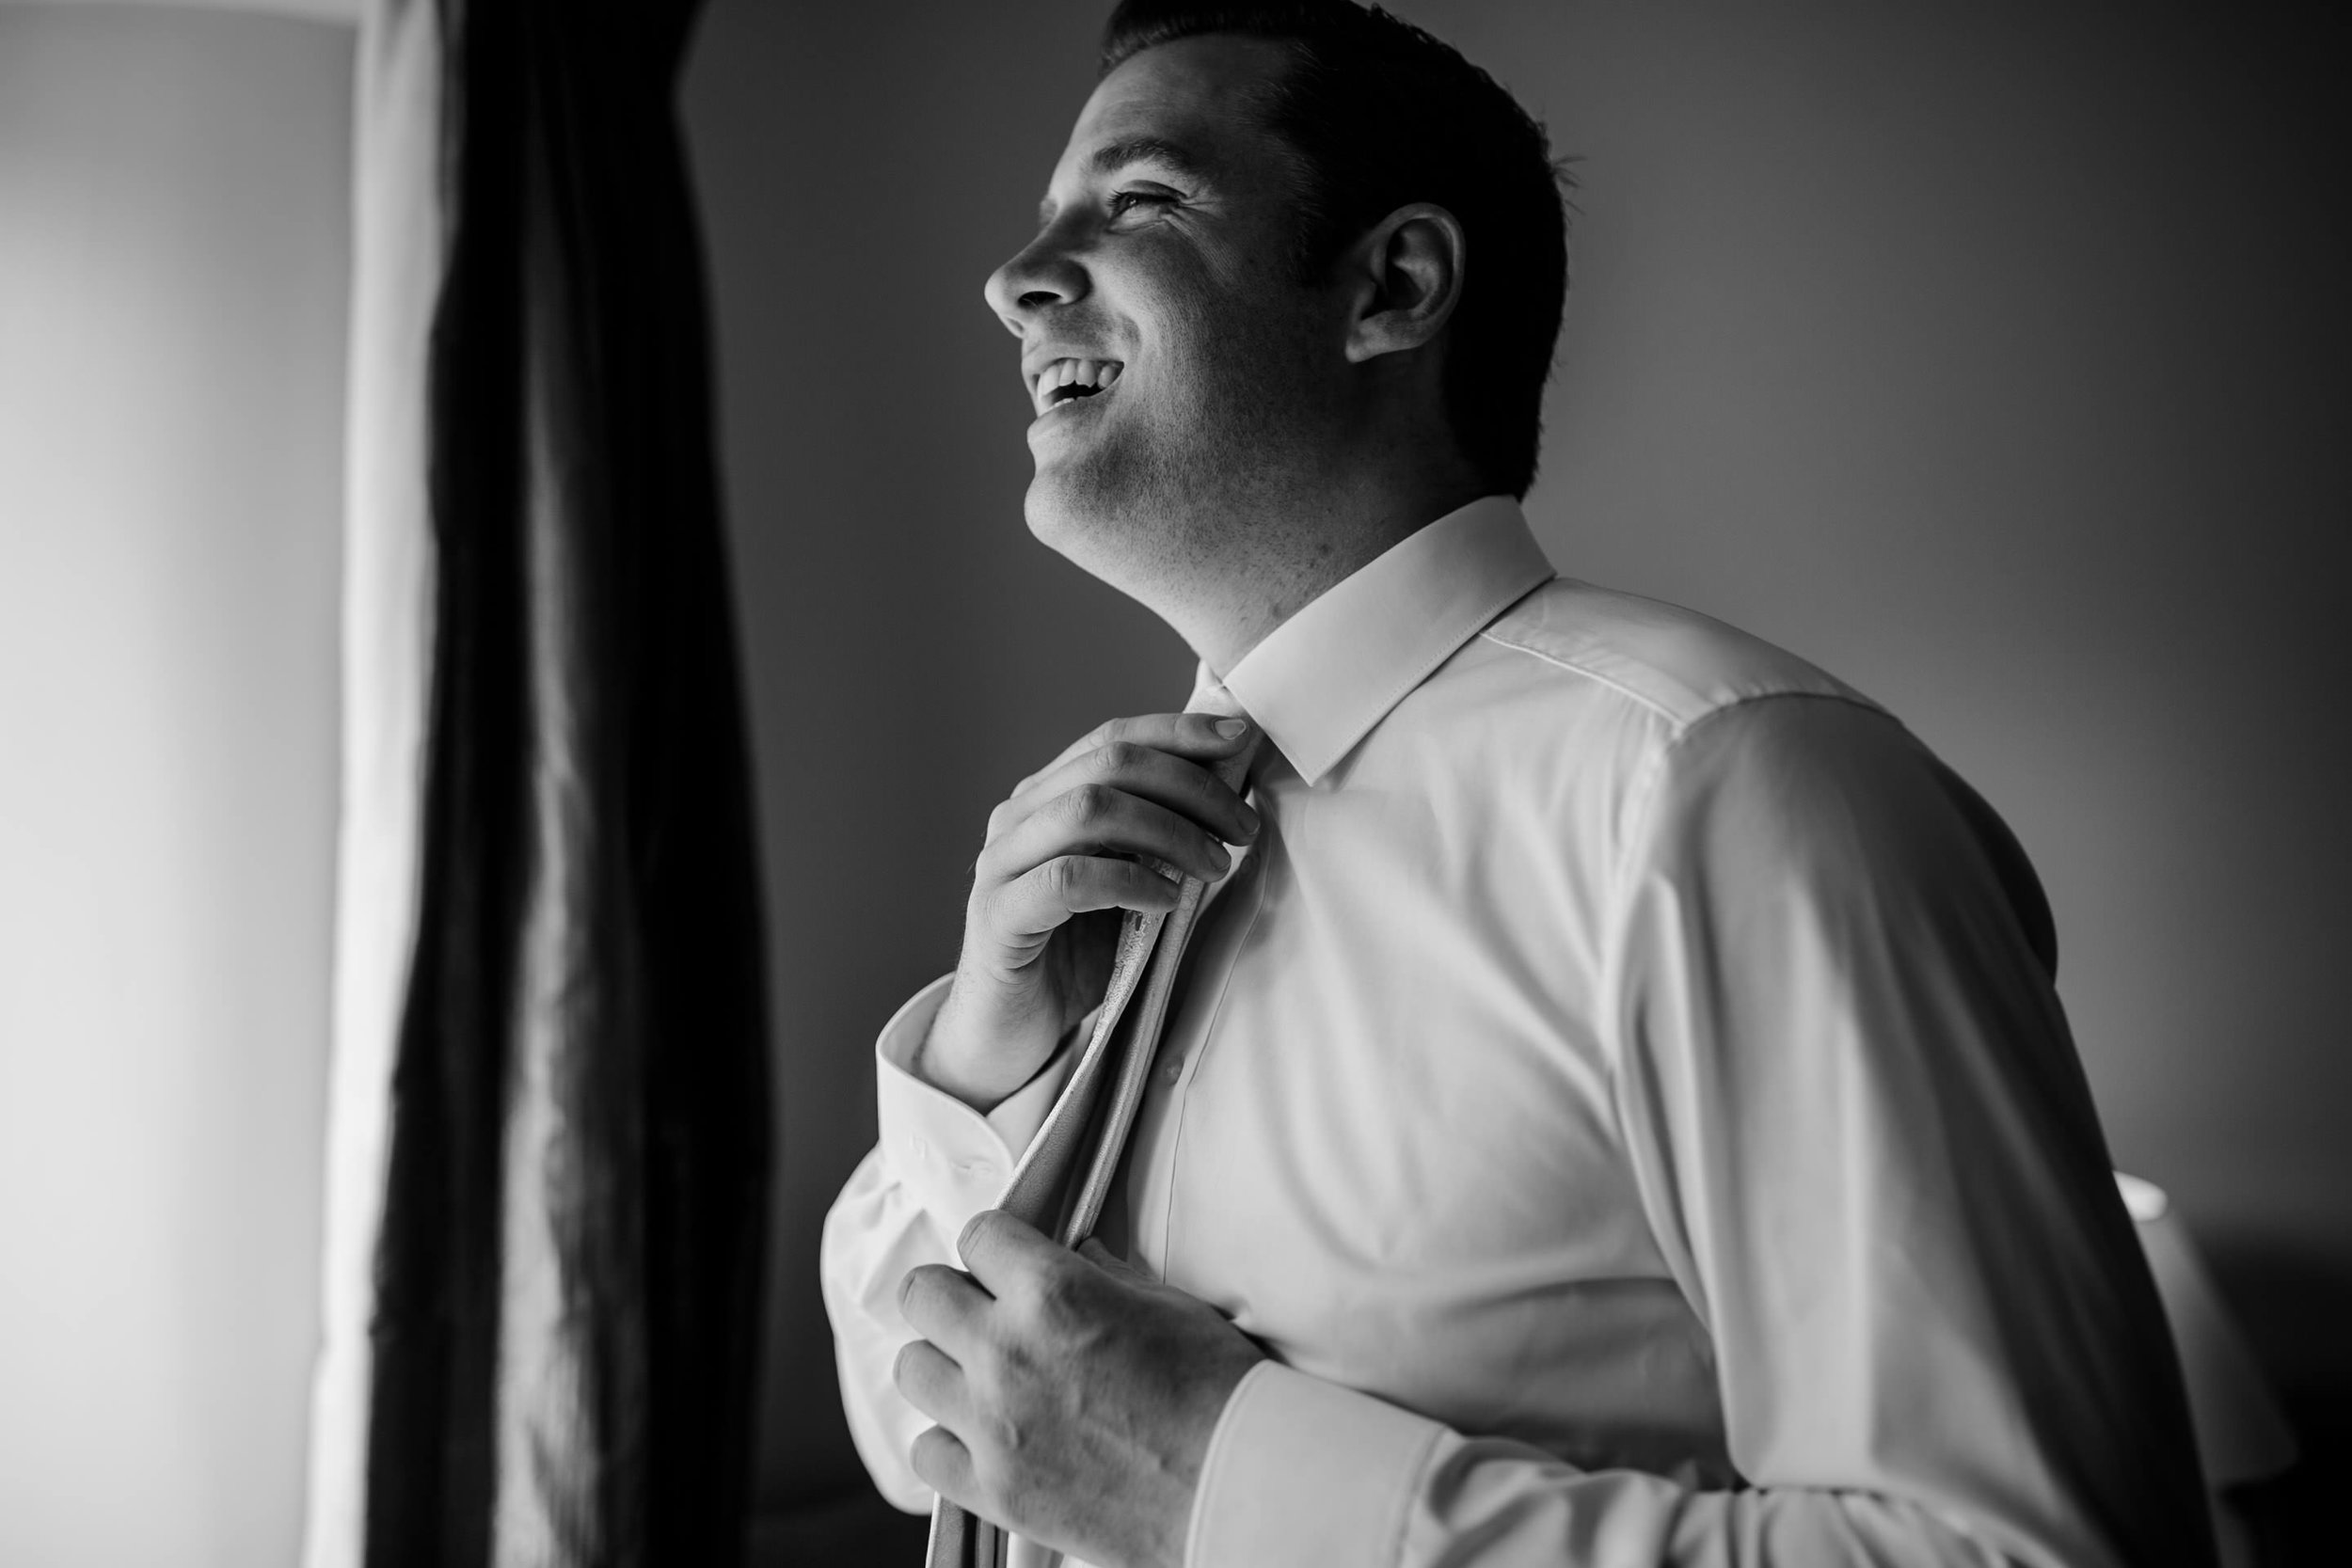 s&a_brooklodge_wedding_photographer_livia_figueiredo_1.jpg